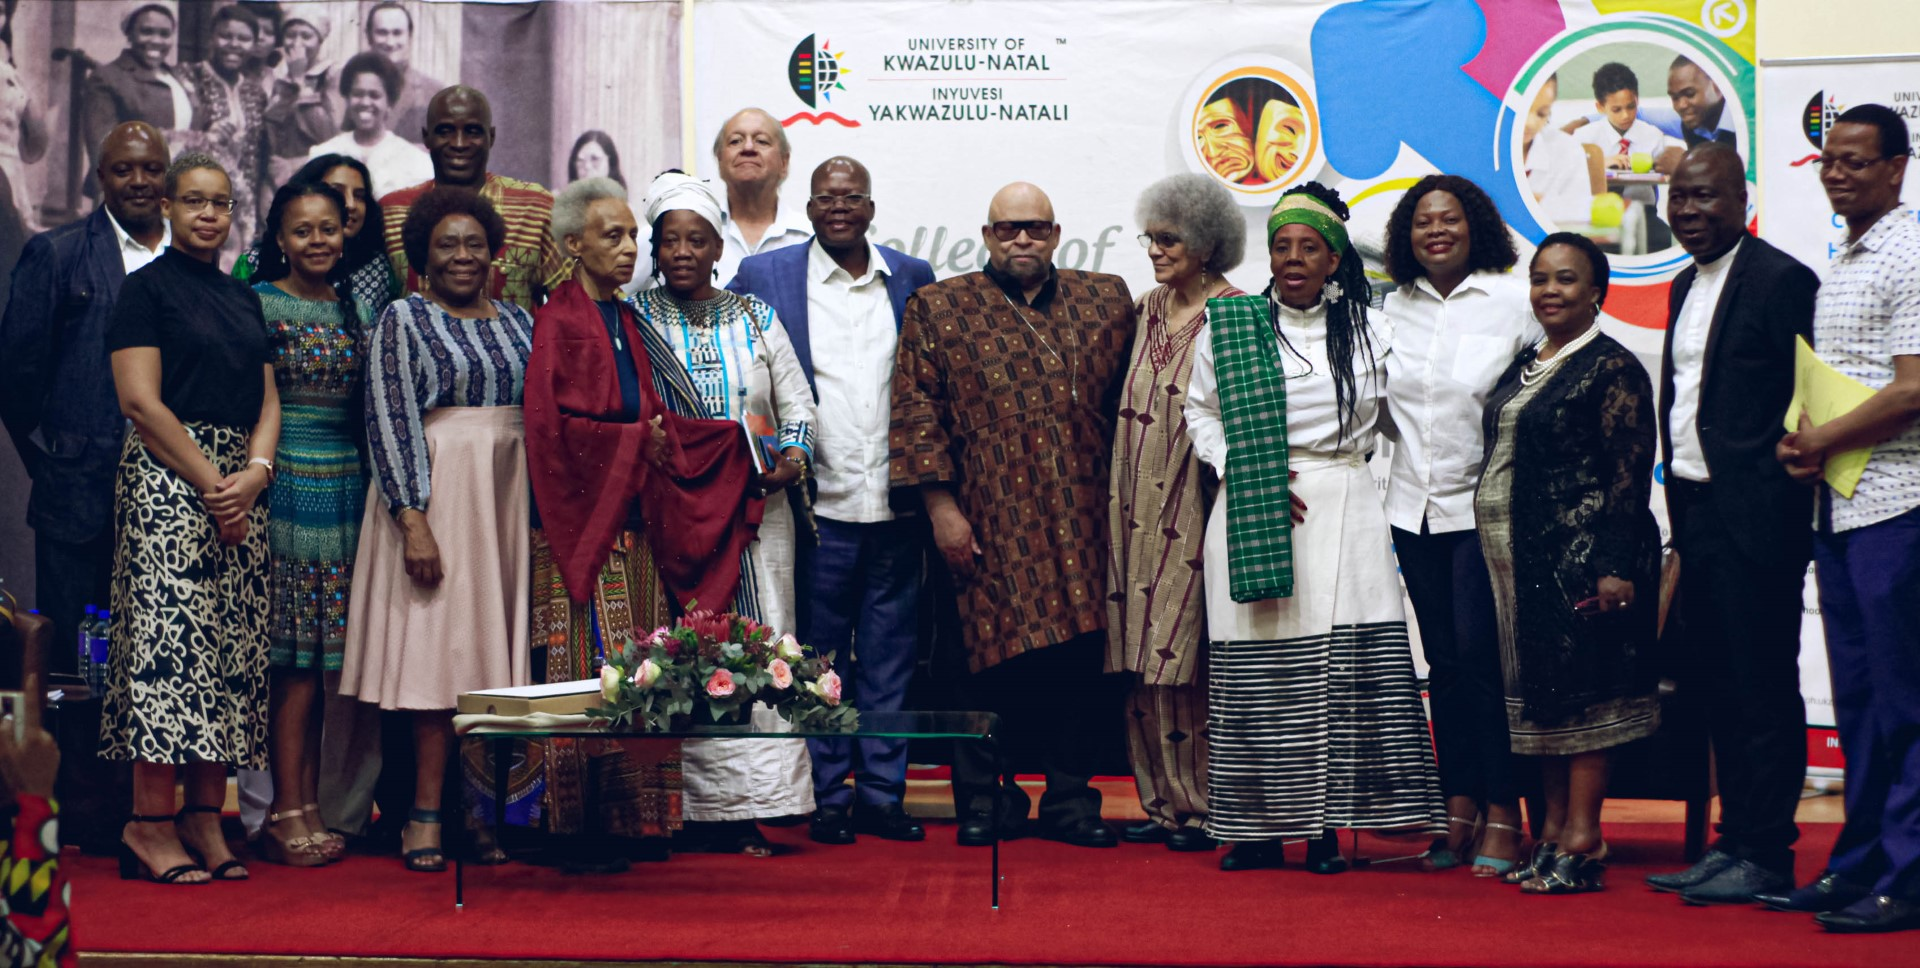 Highlights from the inaugural Mazisi Kunene lecture delivered by activist/scholar Dr Maulana Karenga.